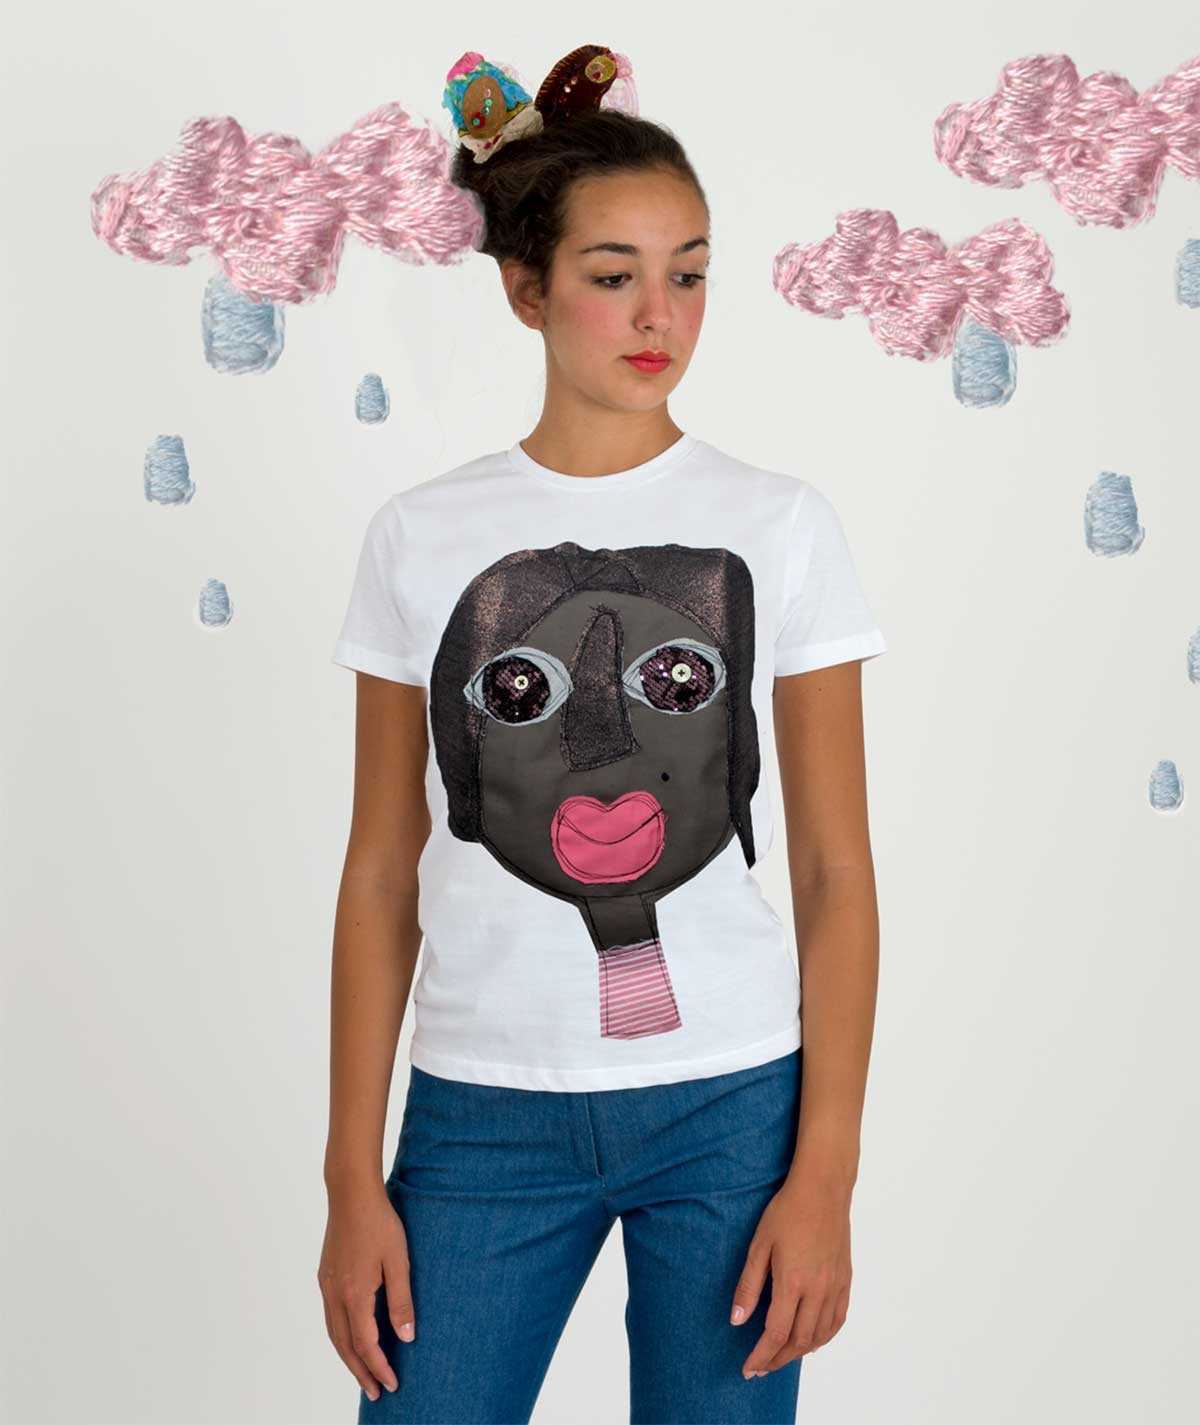 T-shirt with the black woman